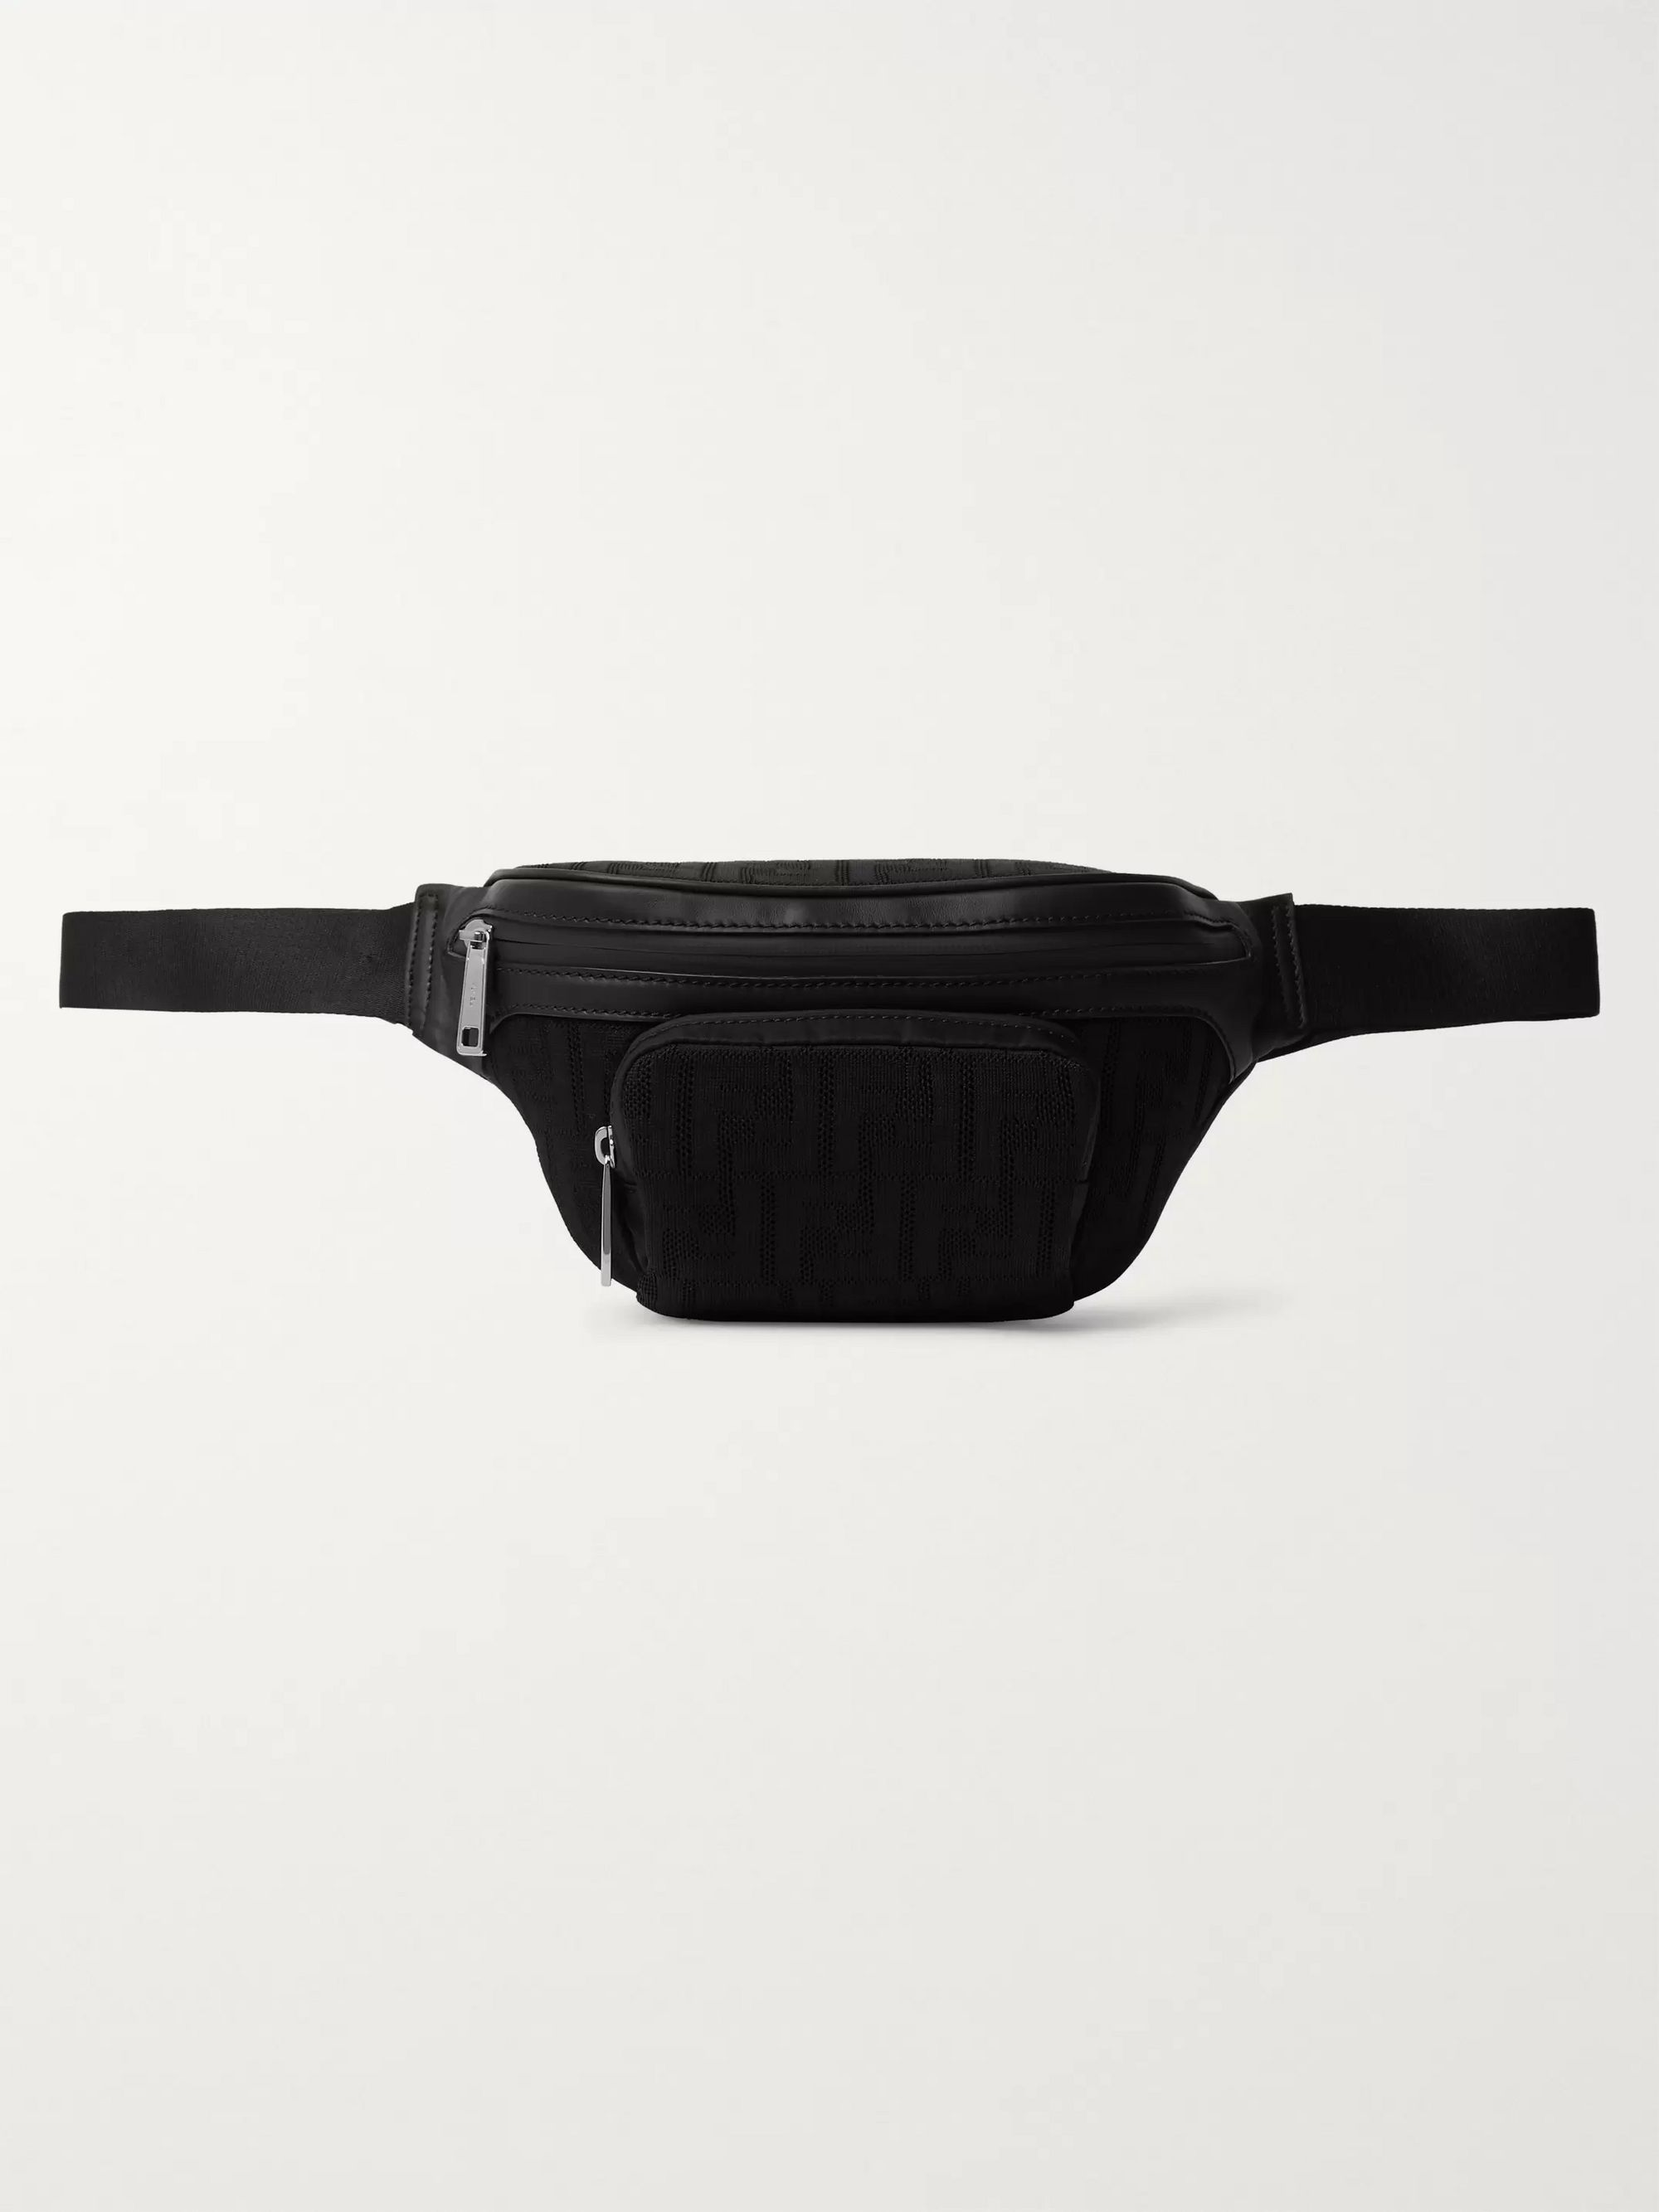 Fendi Leather-Trimmed Logo-Jacquard Mesh Belt Bag